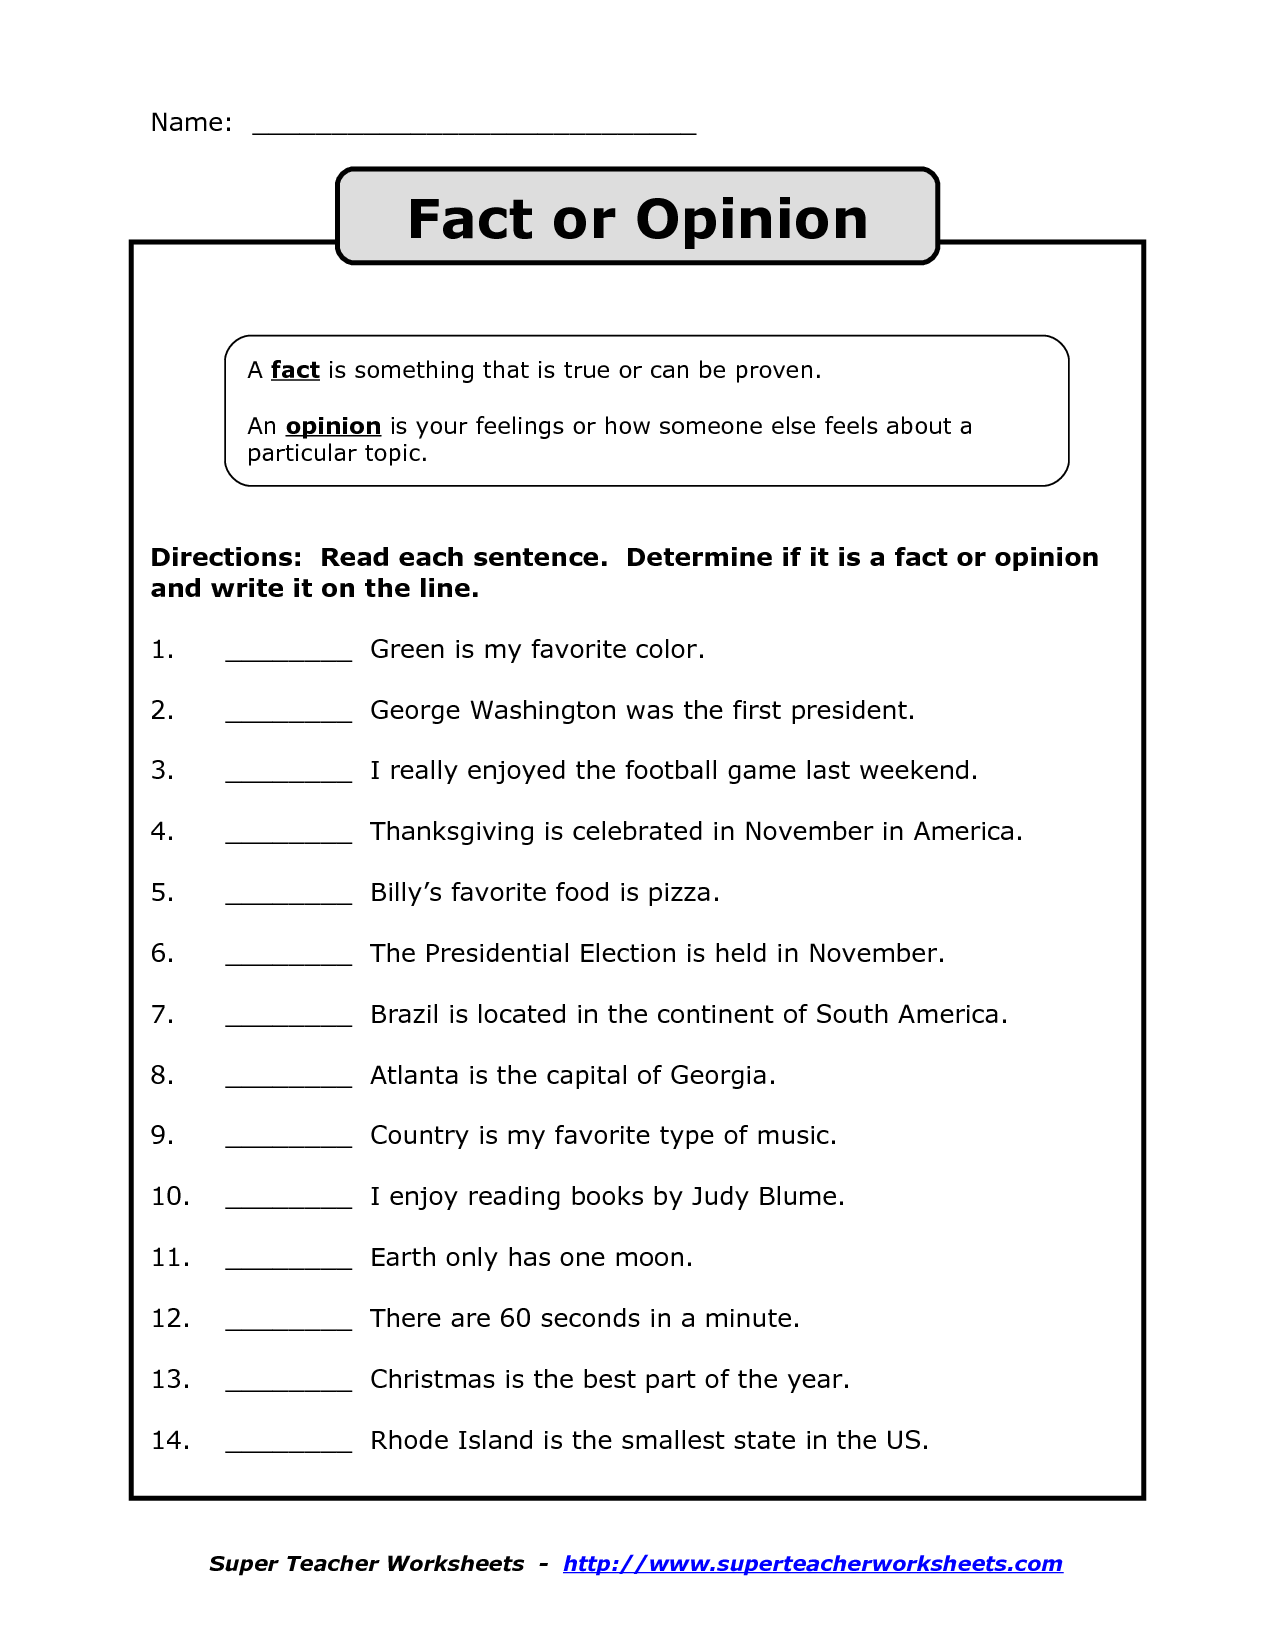 fact vs opinion worksheet - Google Search   Fact and opinion worksheet [ 1650 x 1275 Pixel ]